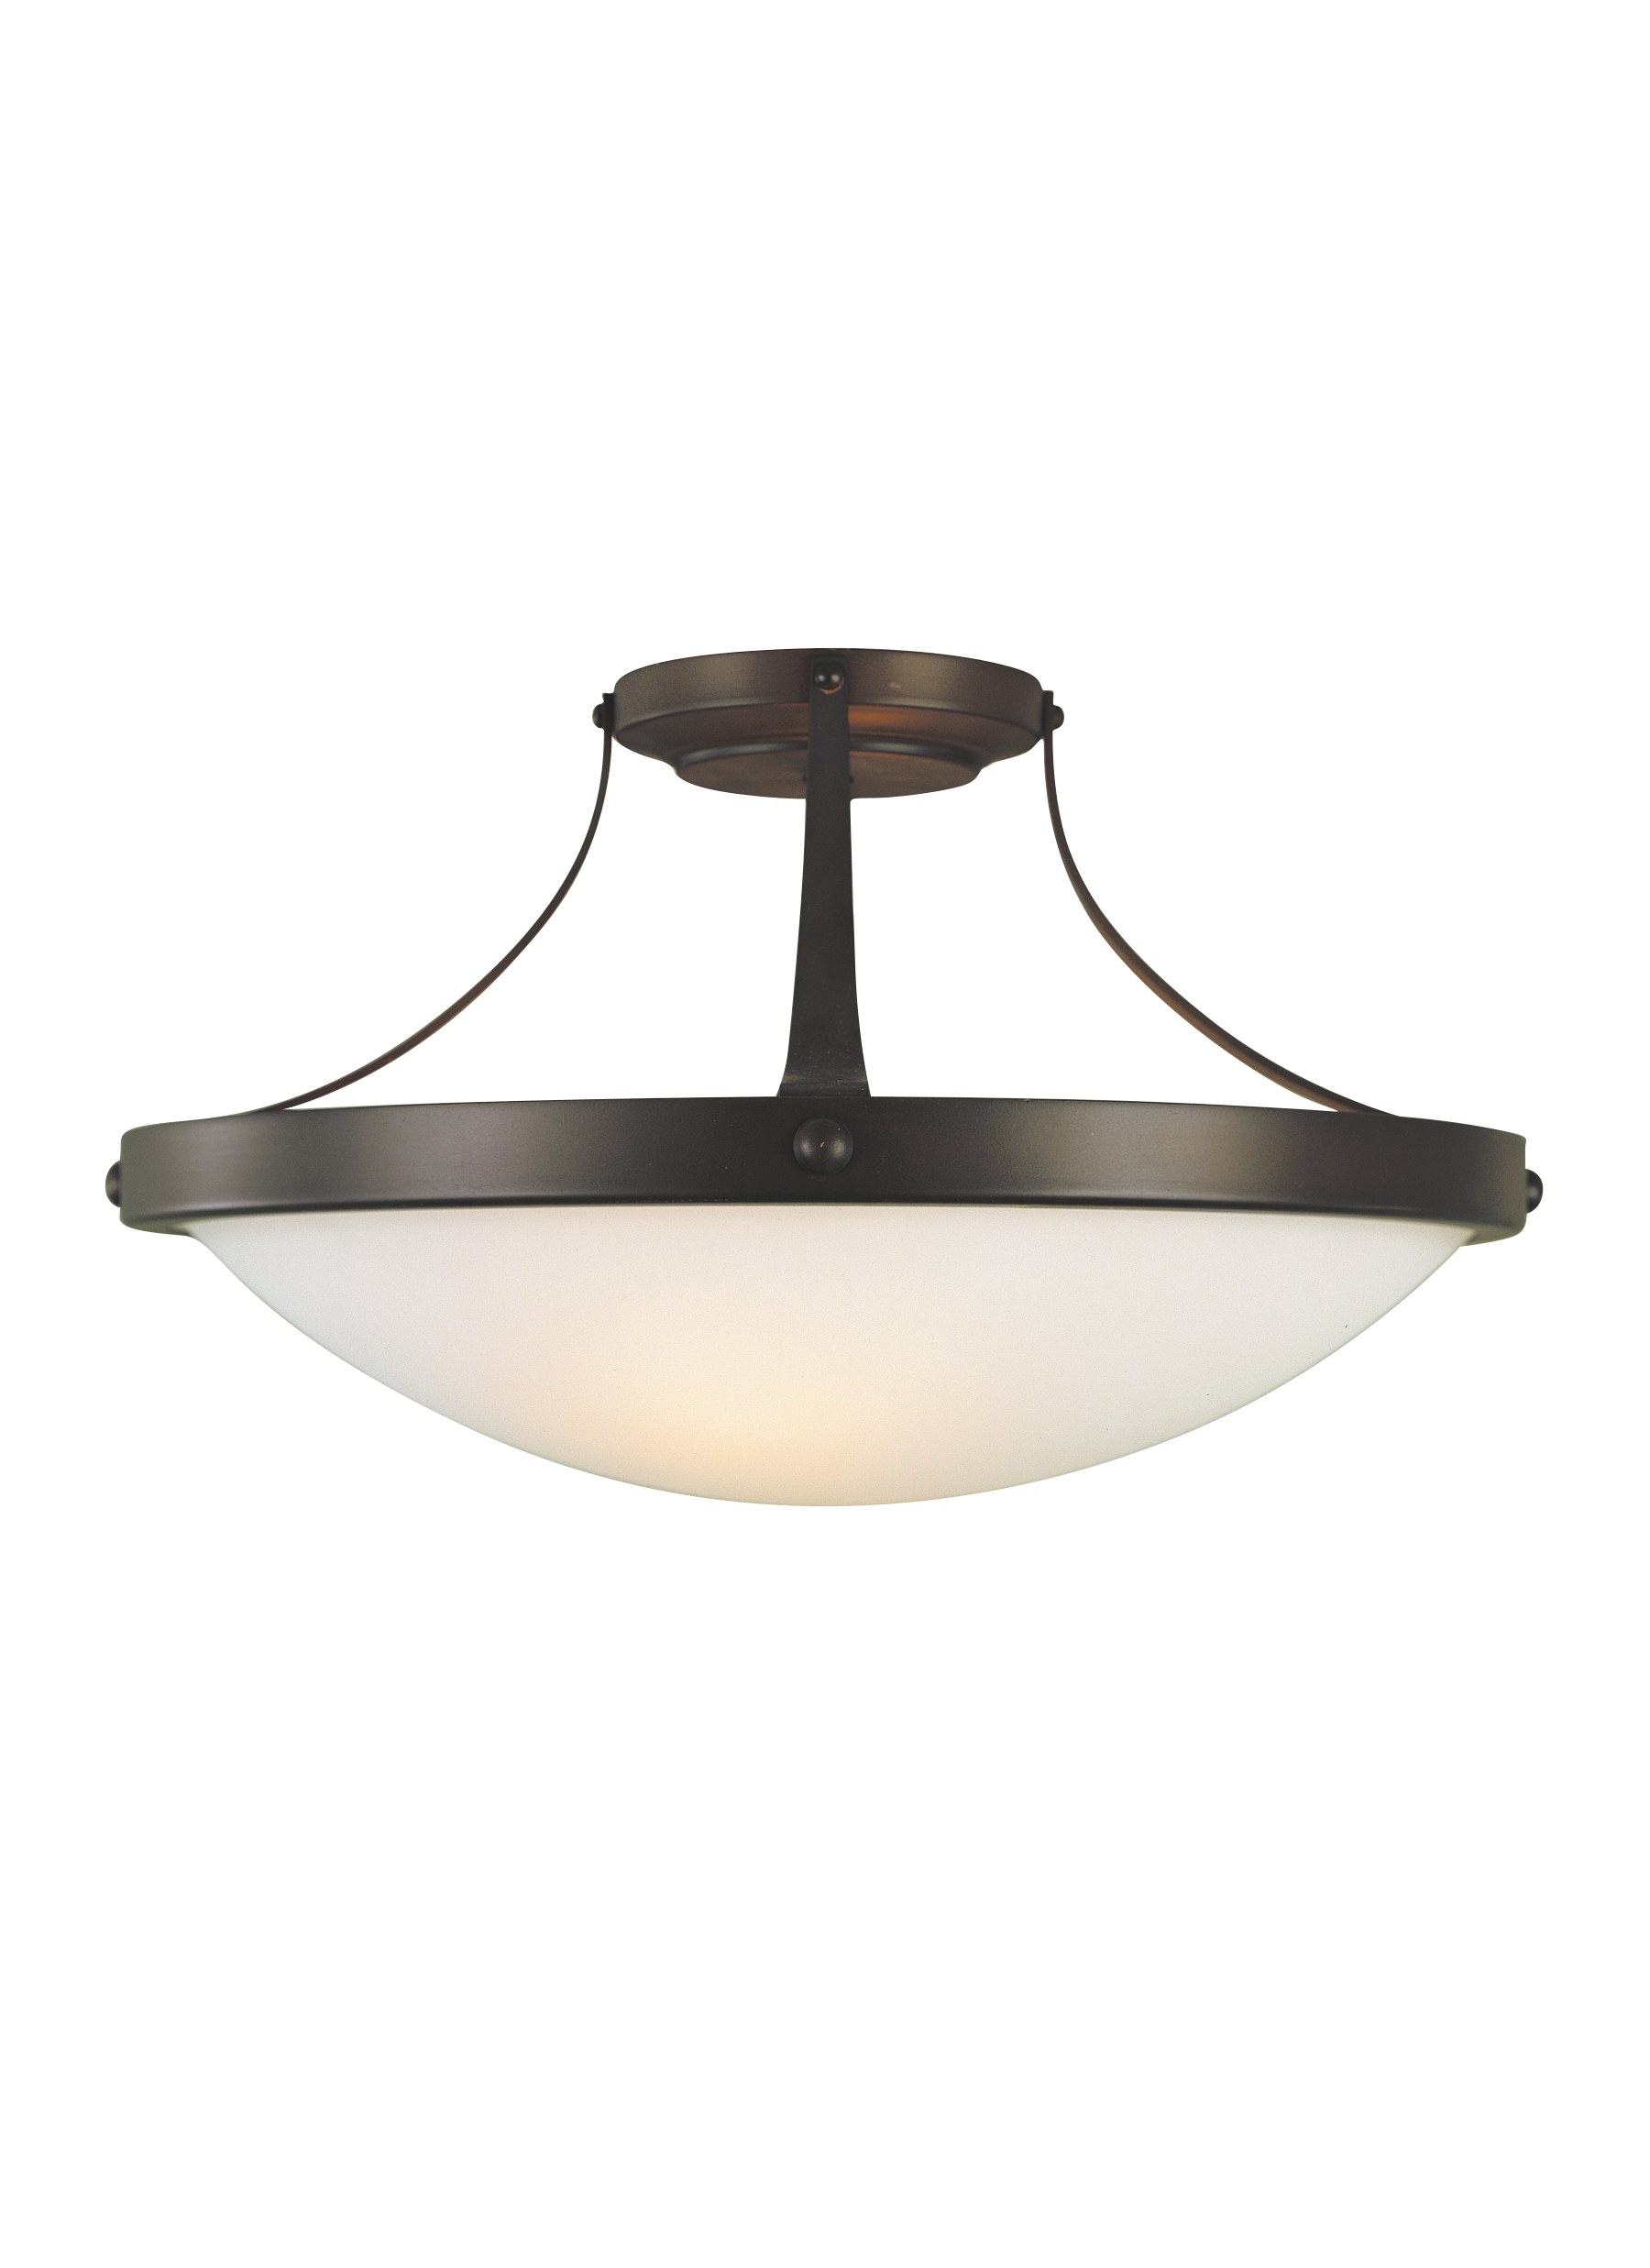 SF187ORB,2 - Light Indoor Semi-Flush Mount,Oil Rubbed Bronze